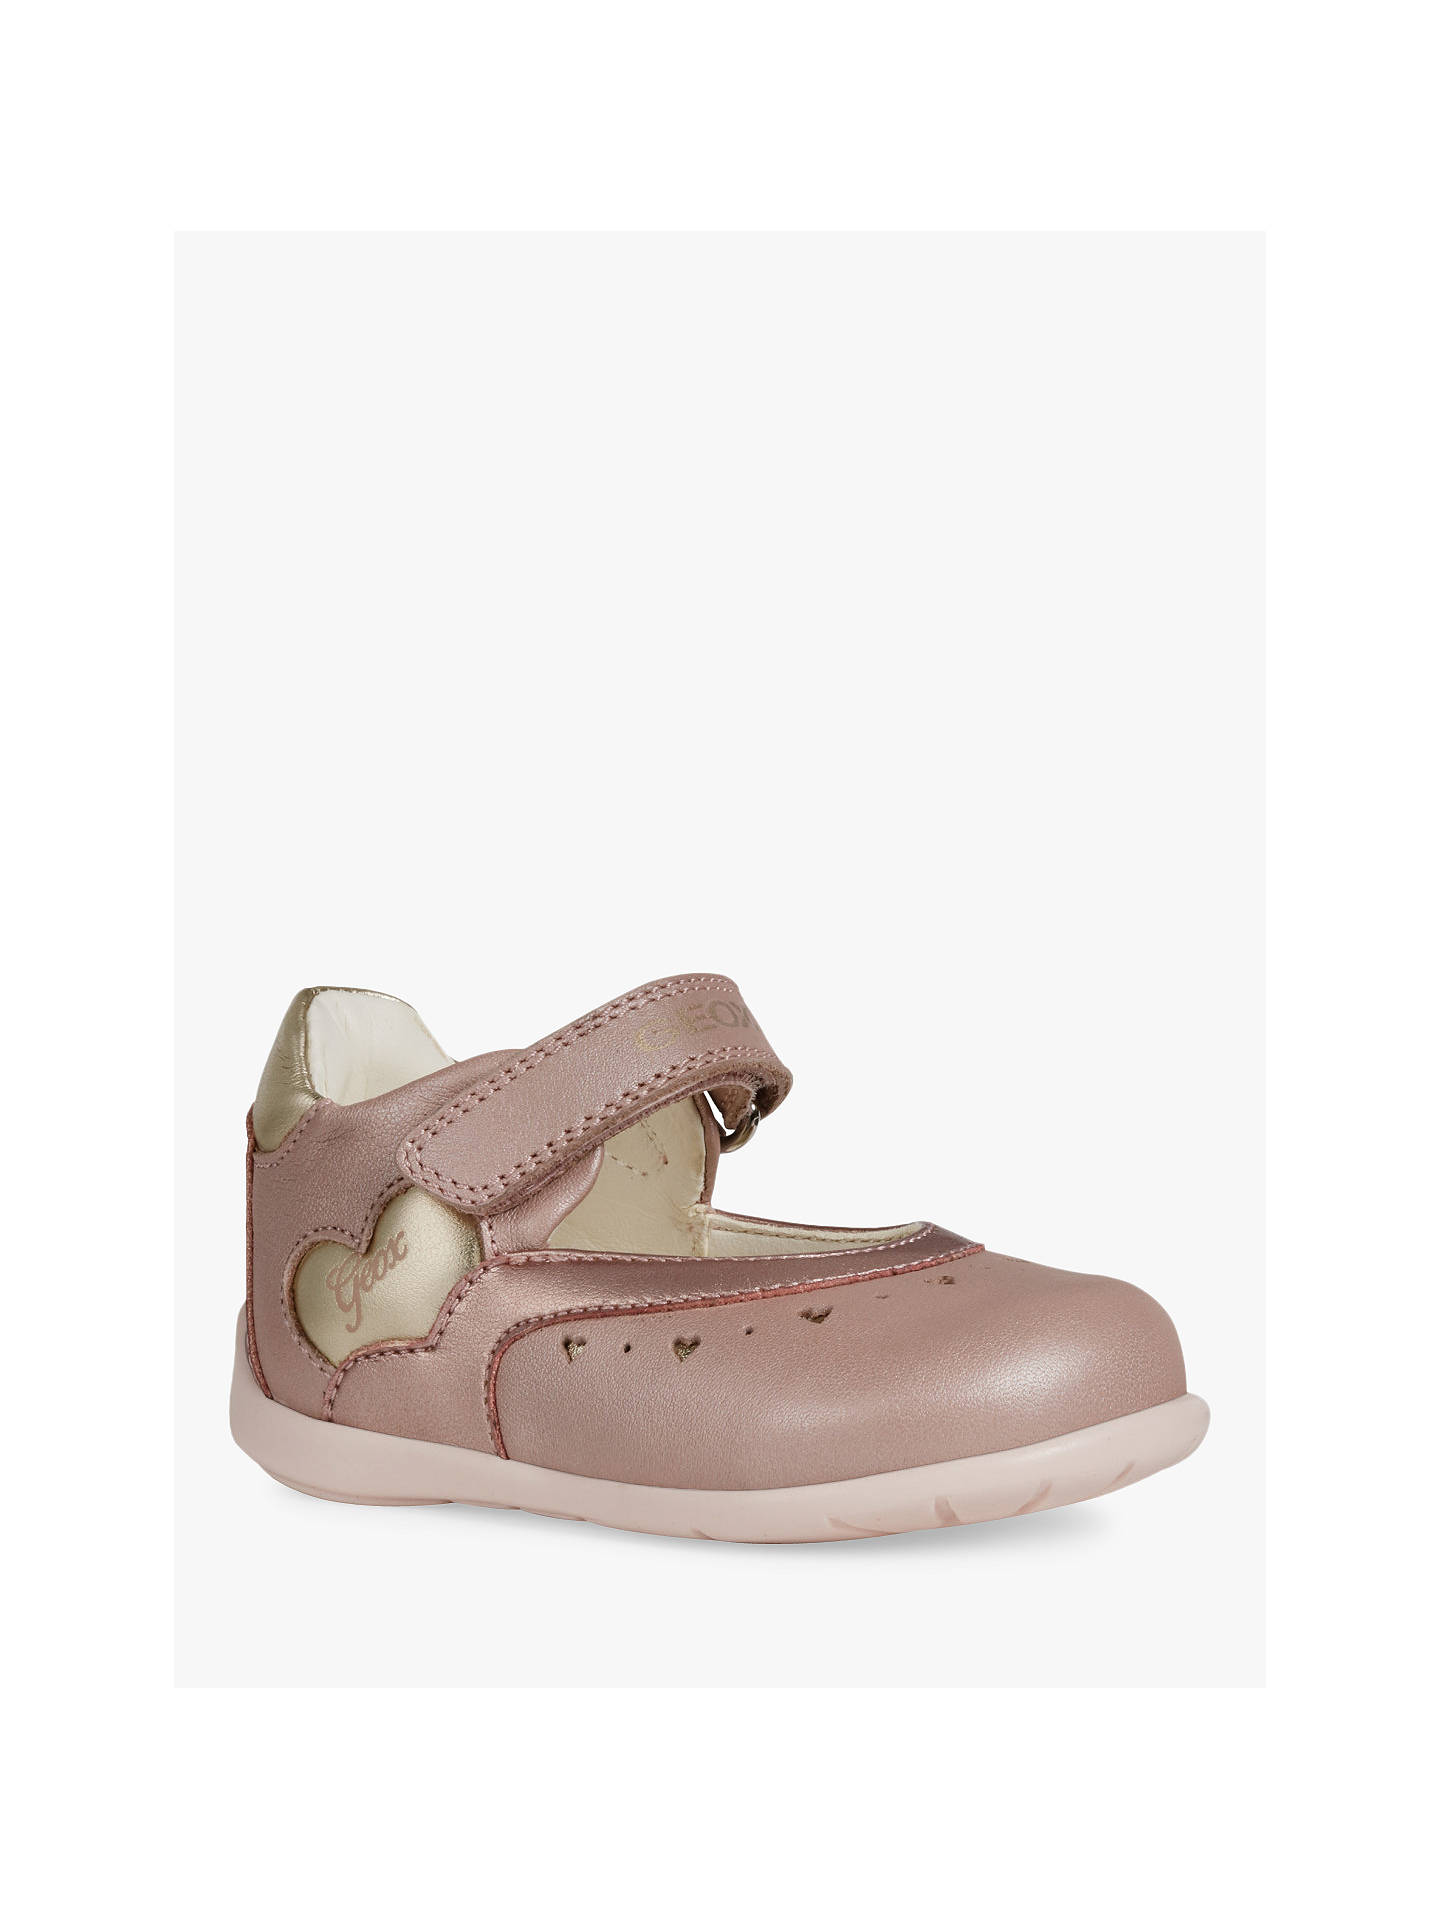 Geox Children's Kaytan Shoes, Brown at John Lewis & Partners